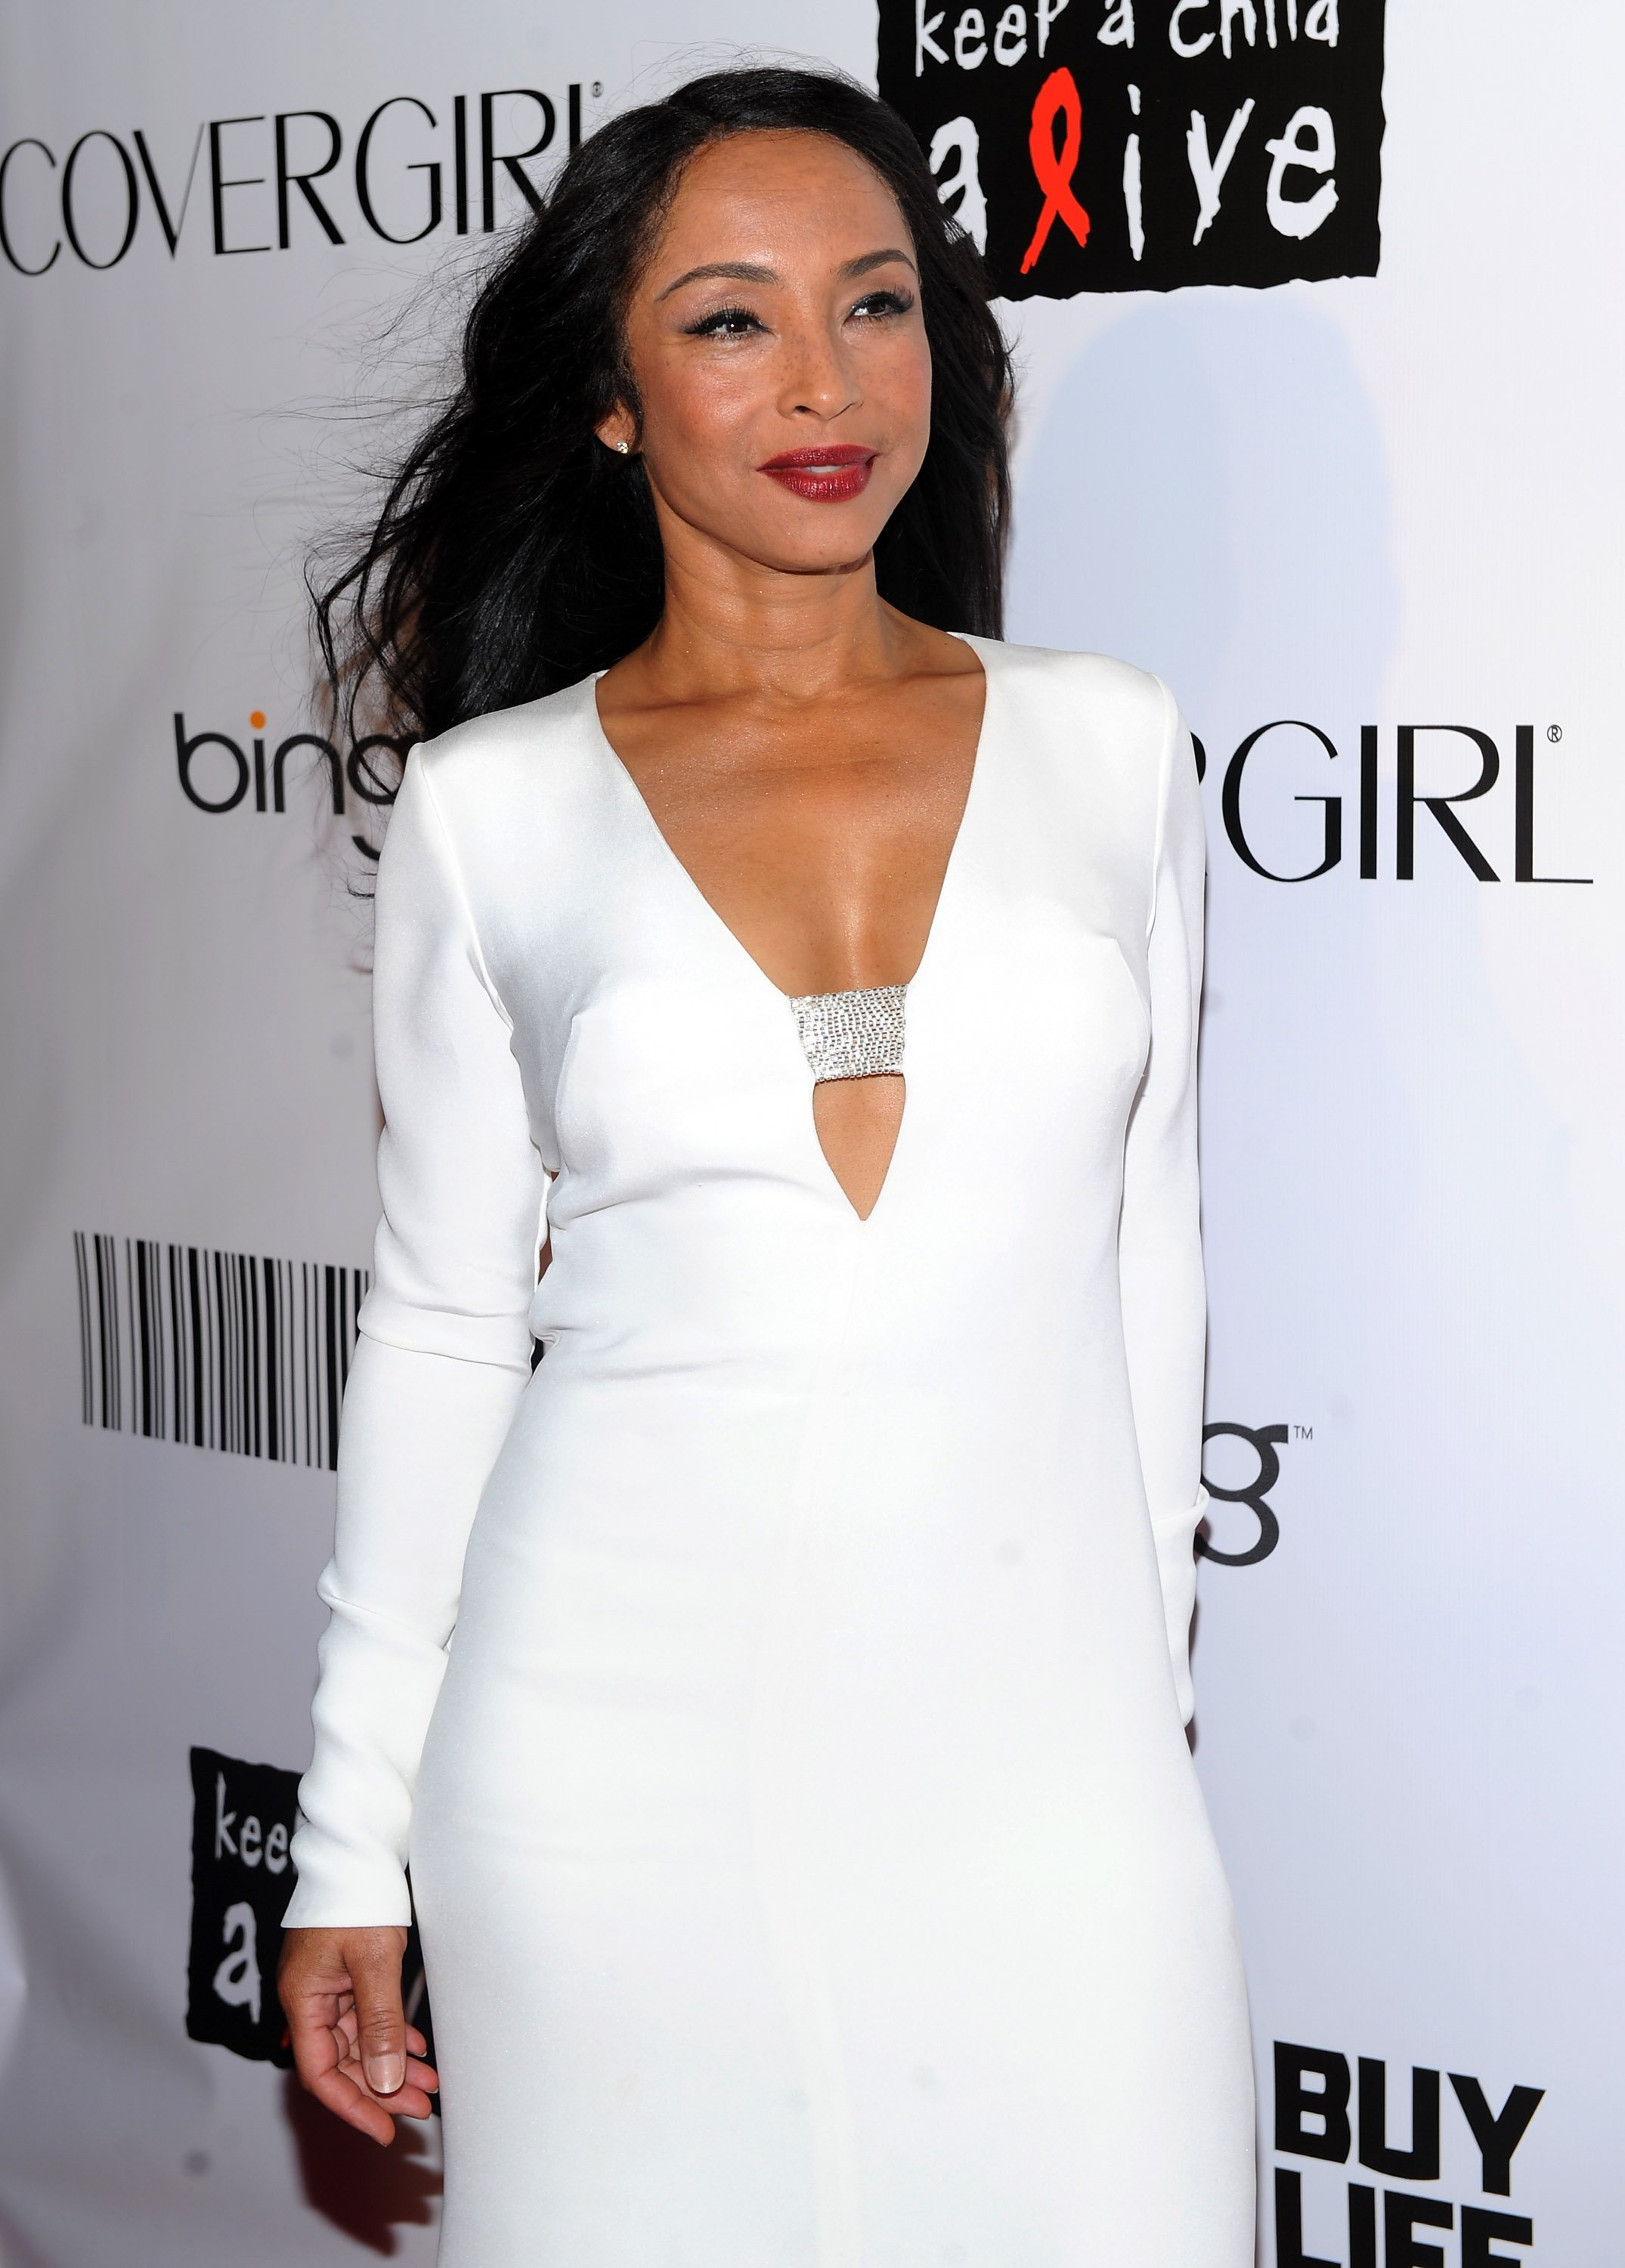 Singer Sade attends the 2010 Keep A Child Alive's Black Ball at the Hammerstein Ballroom on September 30, 2010 | Photo: Getty Images